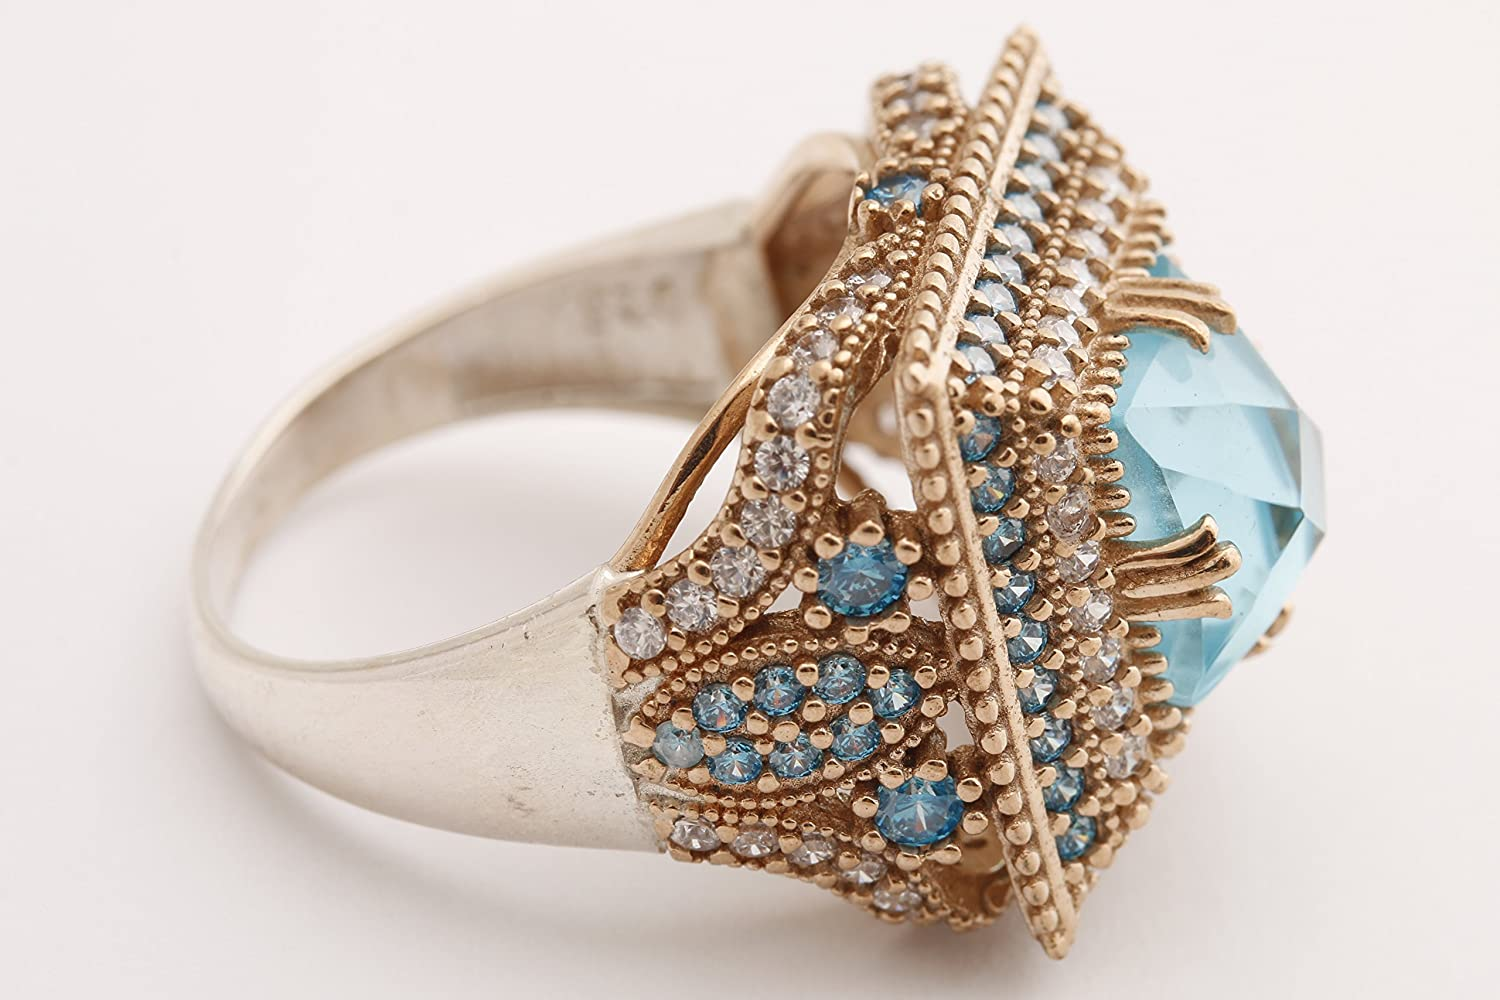 Turkish Handmade Jewelry Square Shape Princess Cut London Blue and Round Cut Topaz 925 Sterling Silver Ring Size All